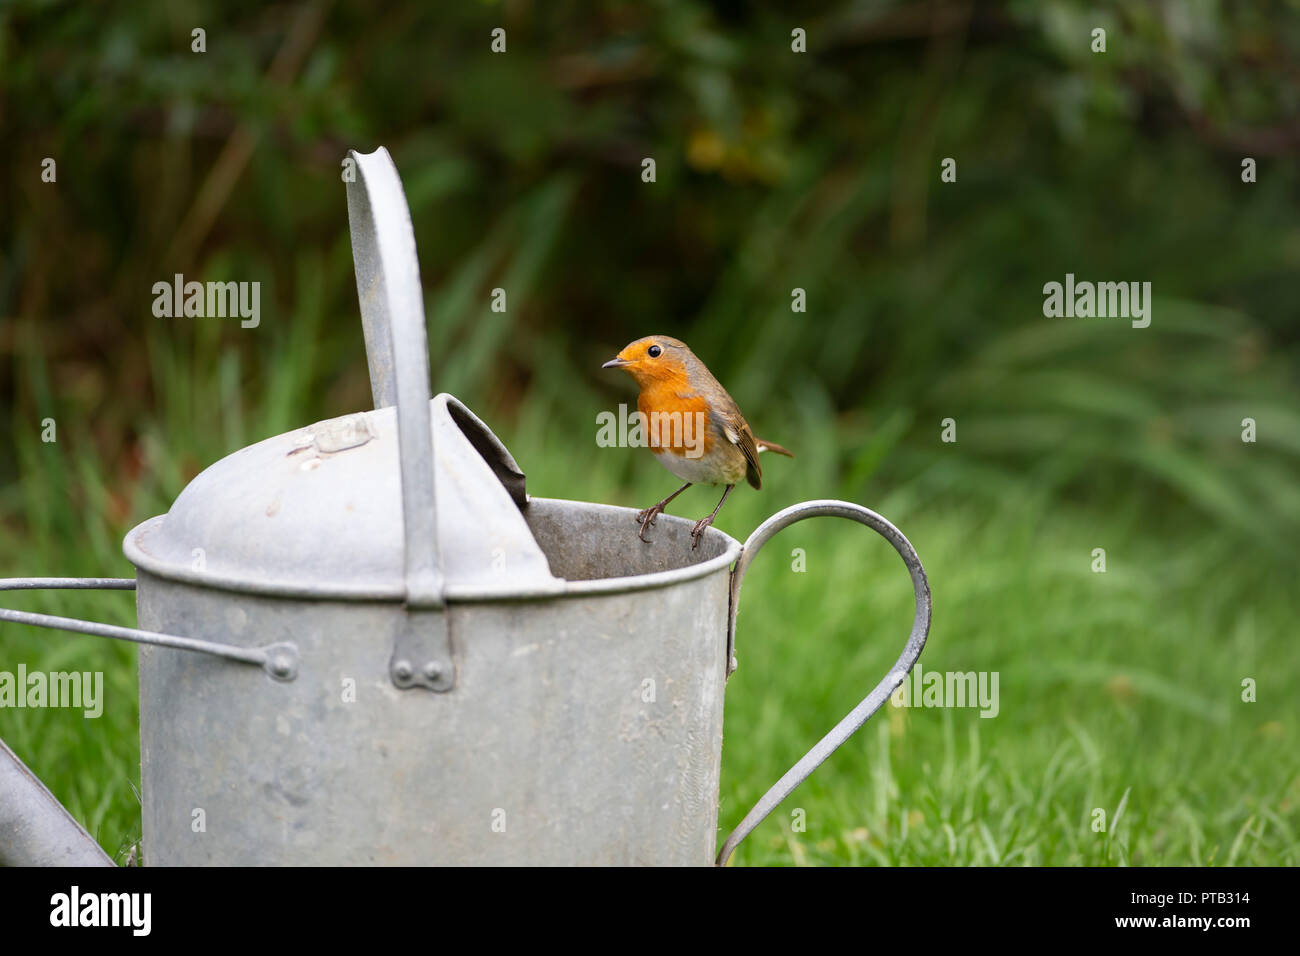 European Robin Erithacus rubecula perched on the rim of an old galvanised watering can - Stock Image